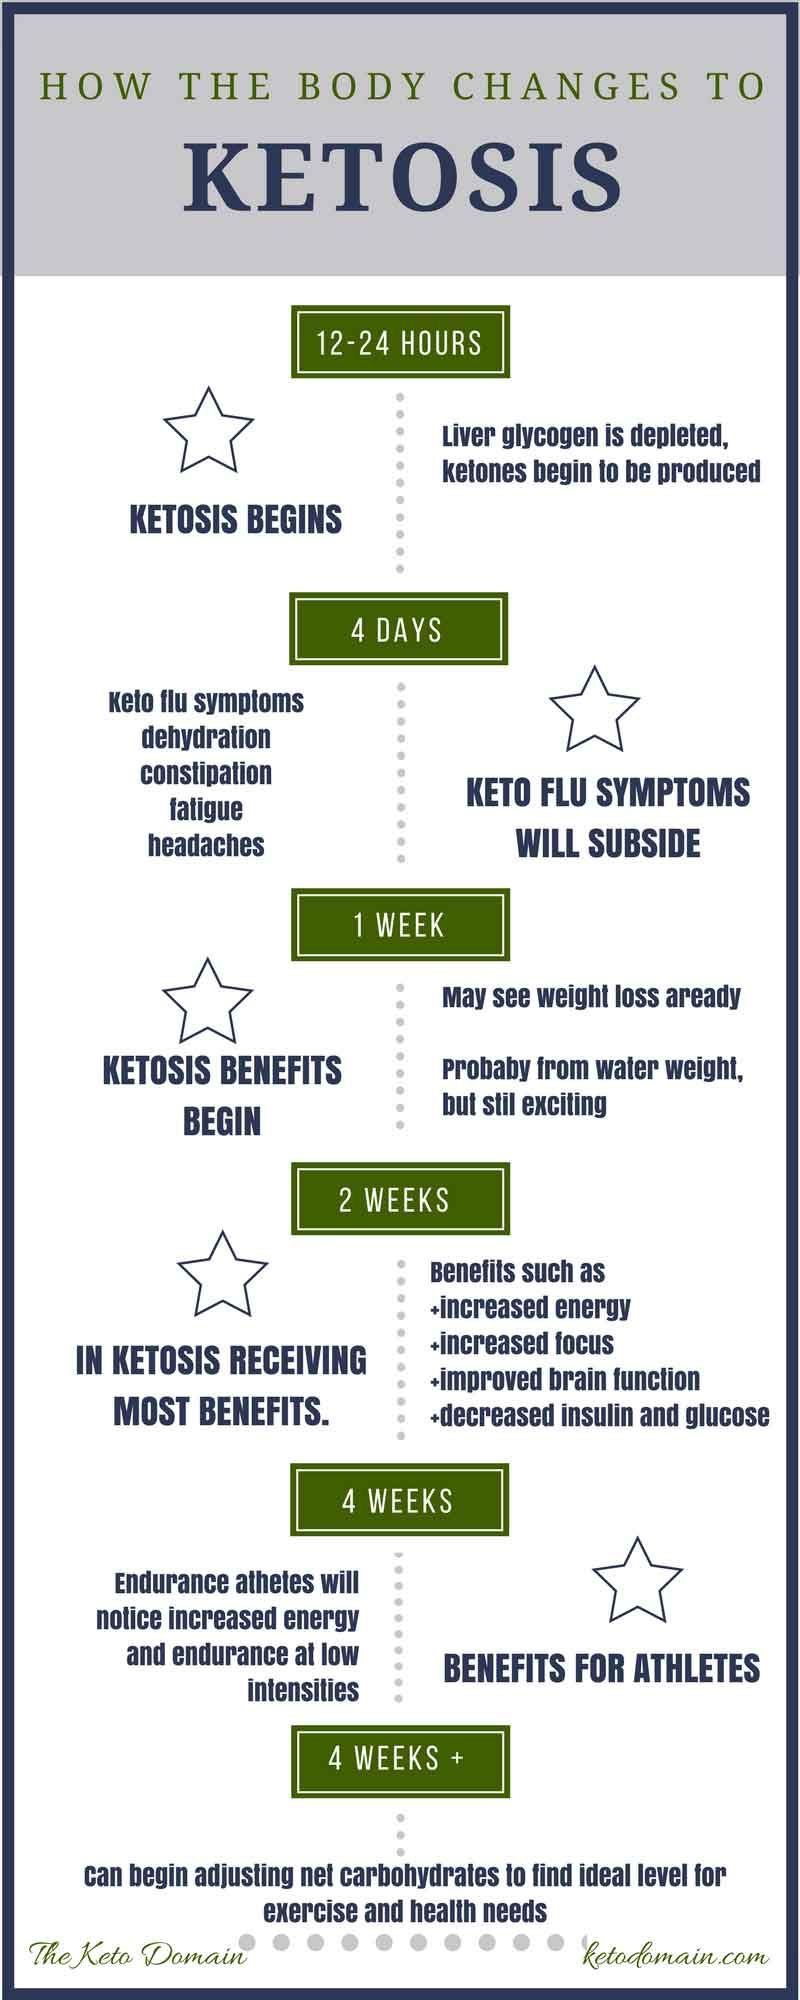 How the Body changes to Ketosis